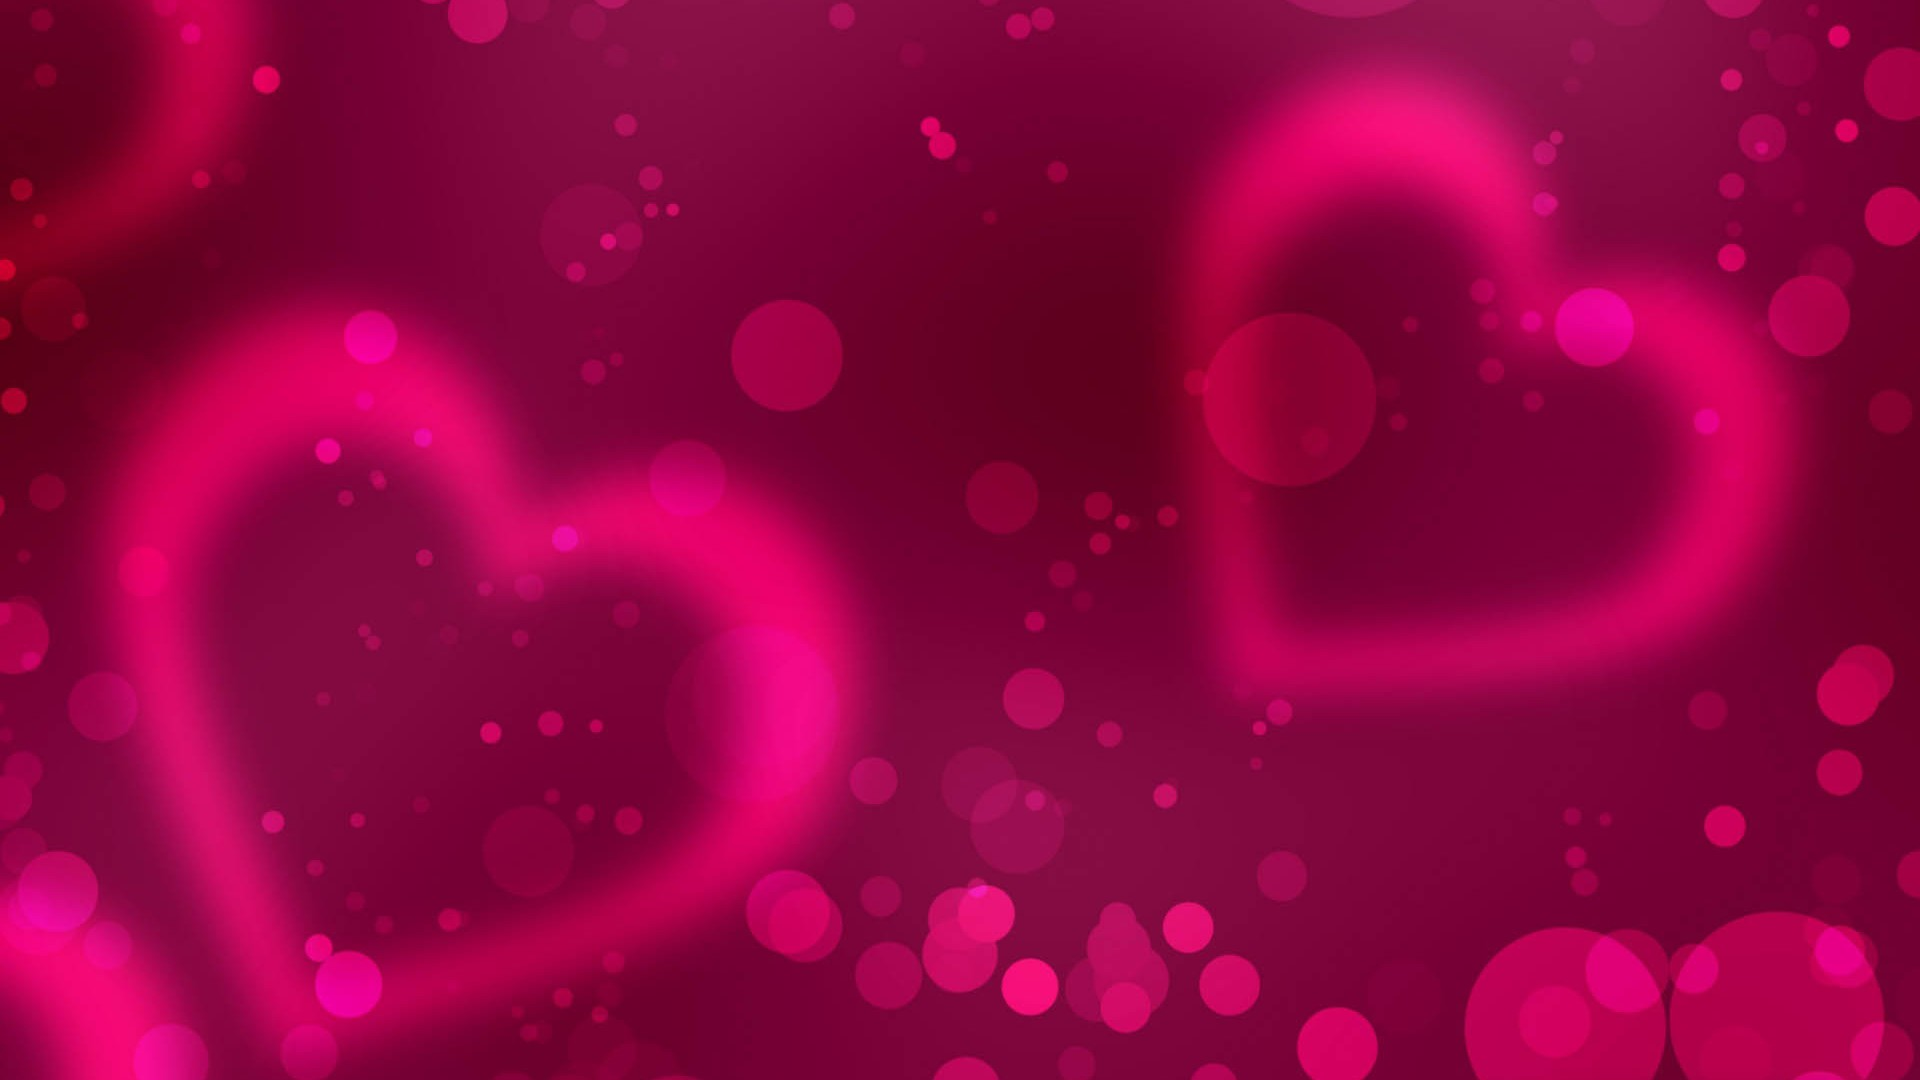 pink valentines day hd wallpaper wallpapers55com   Best Wallpapers 1920x1080